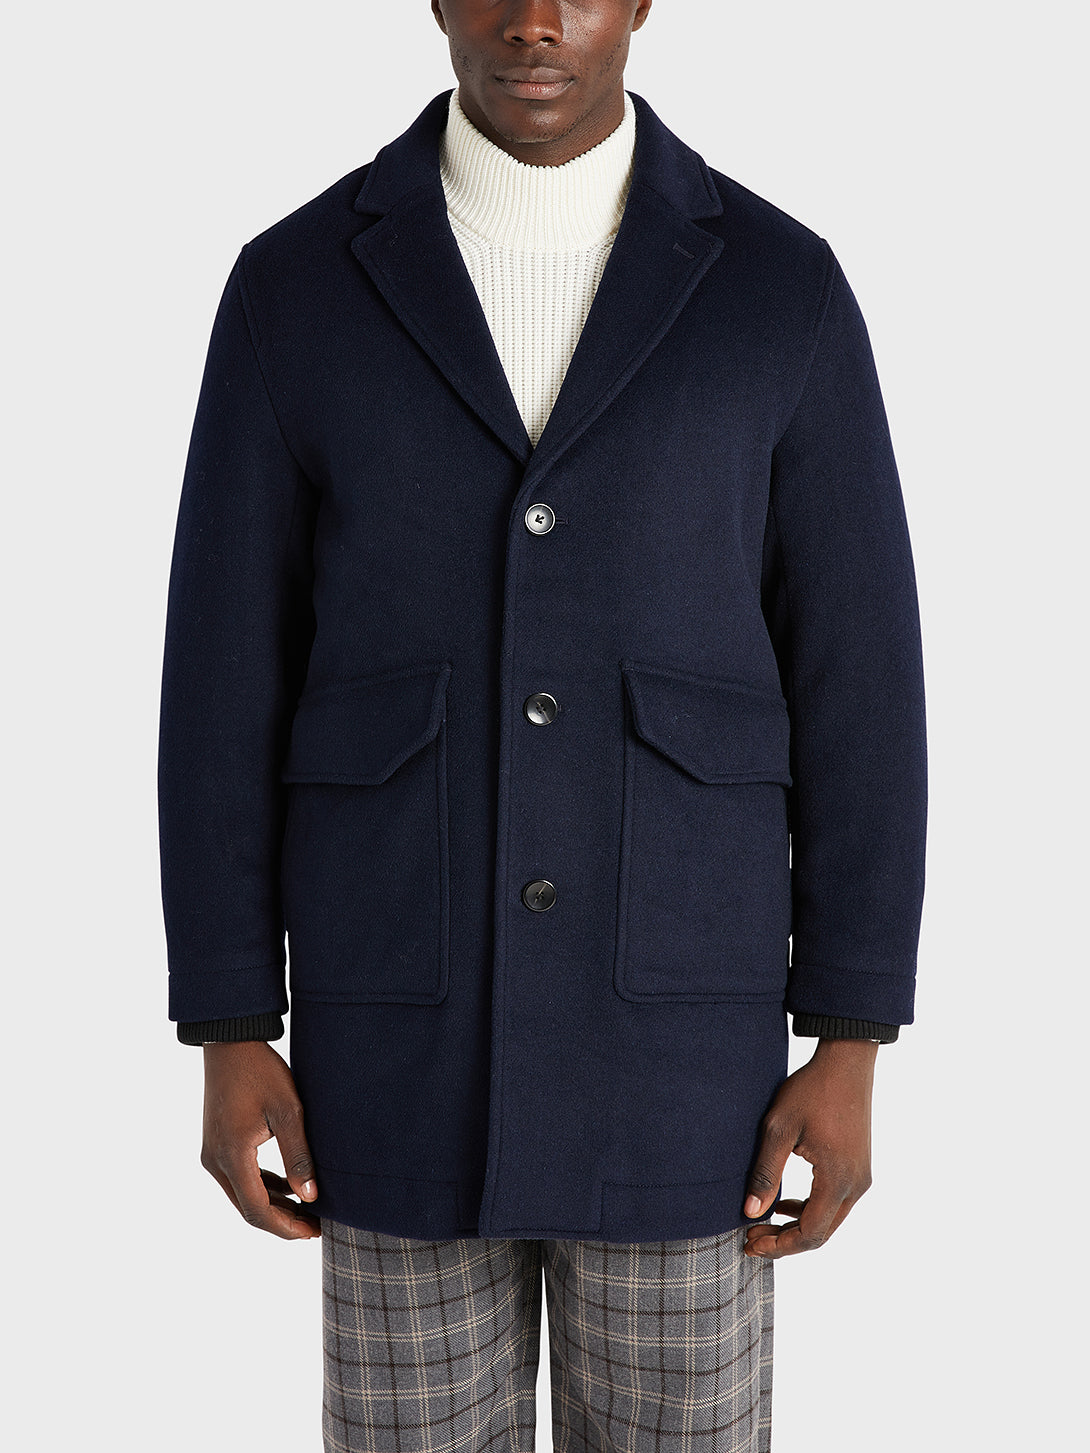 black friday deals ONS Clothing Men's outerwear in NAVY